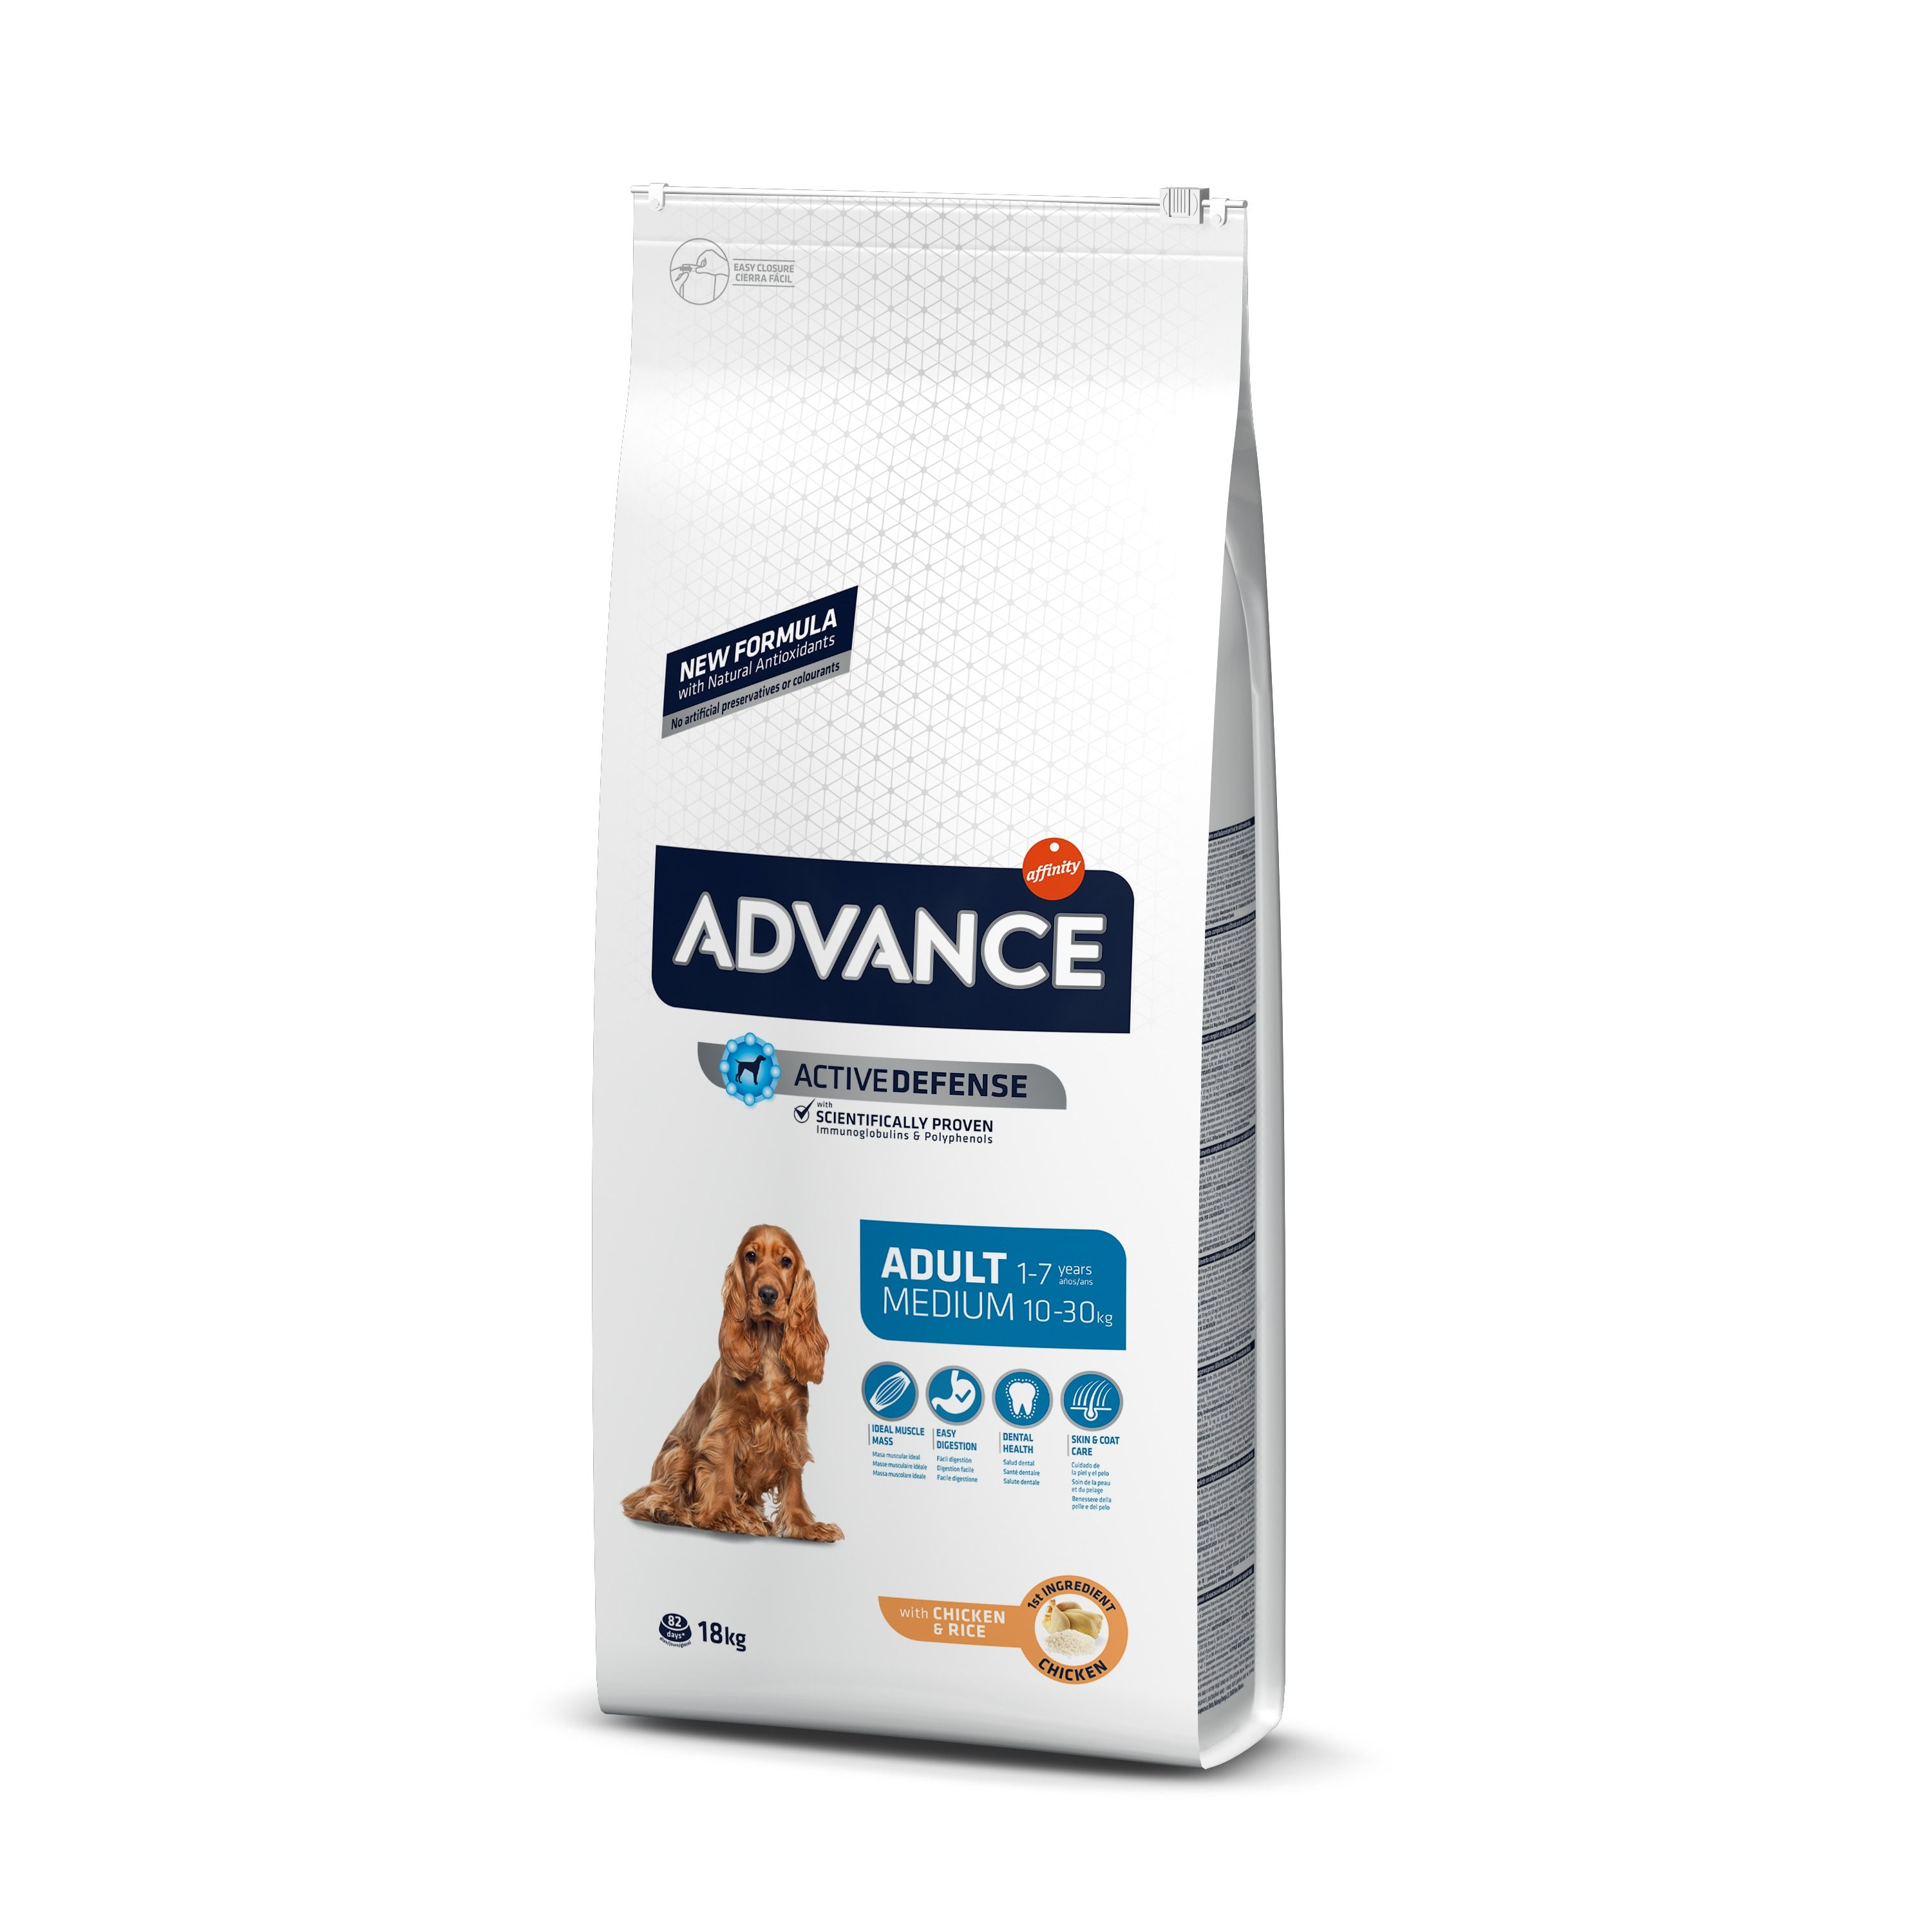 Šunų maistas Advance medium adult chicken rice 18kg